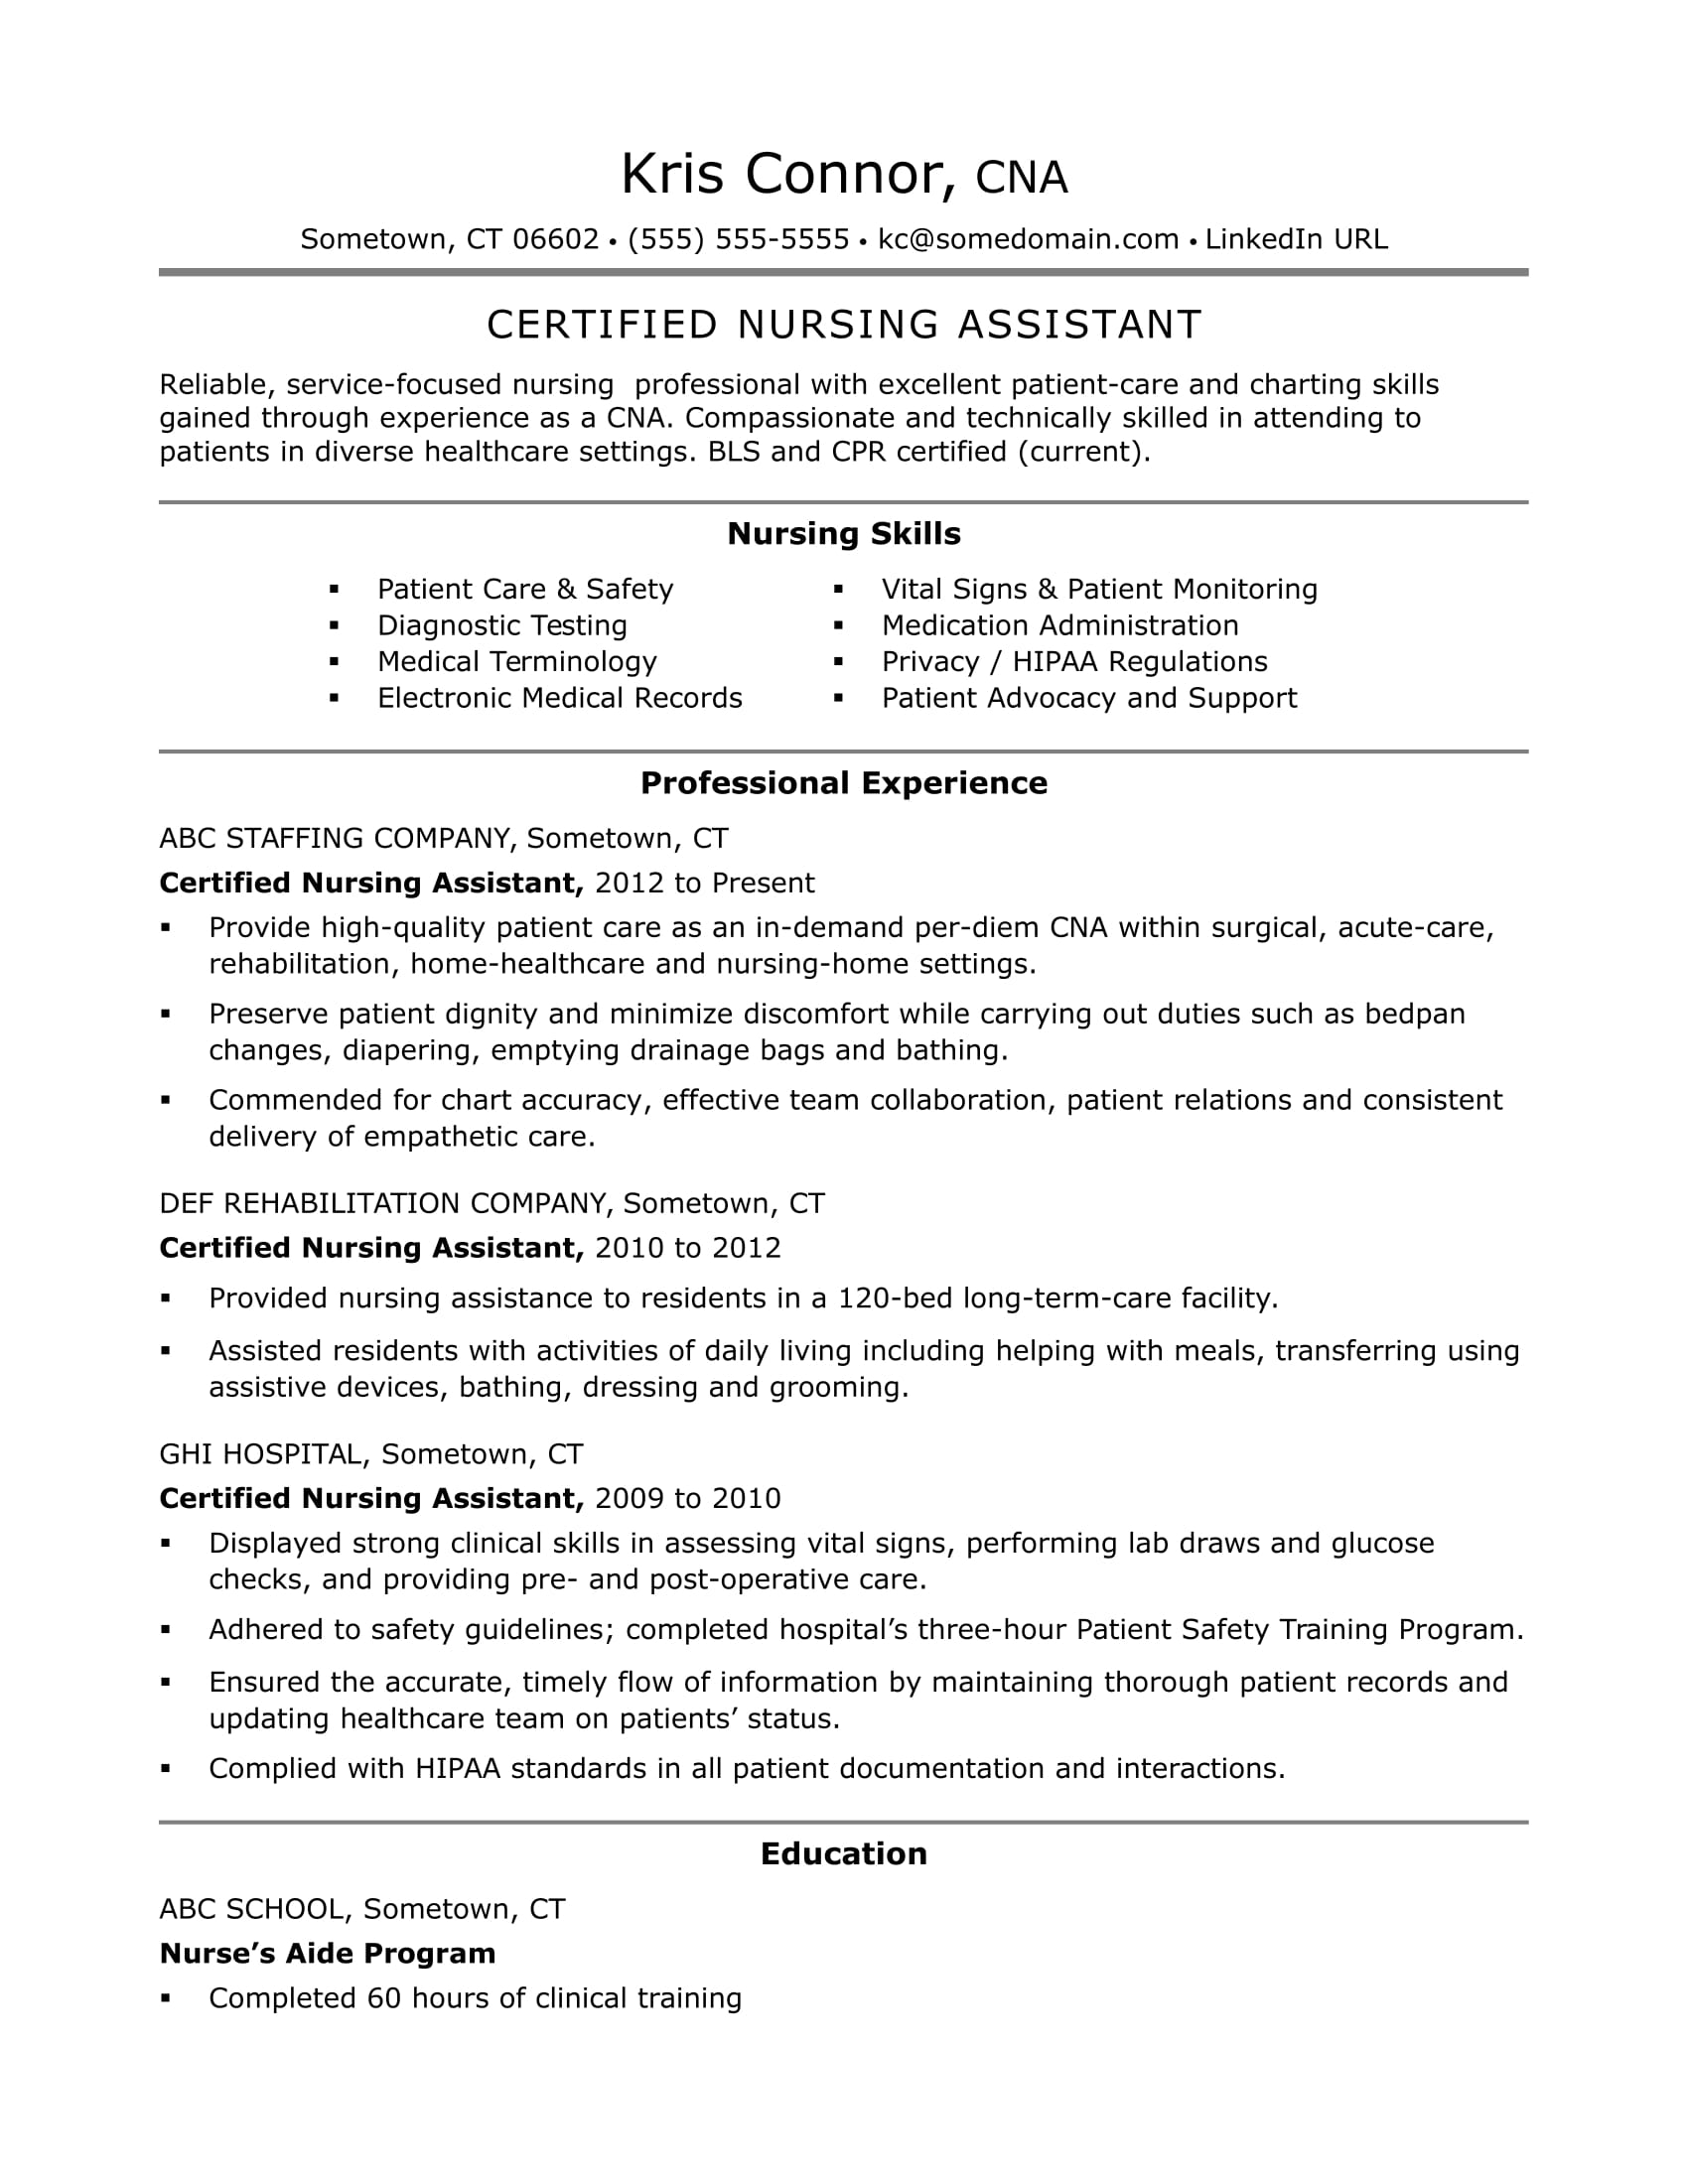 CNA Resume Examples: Skills for CNAs | Monster.com